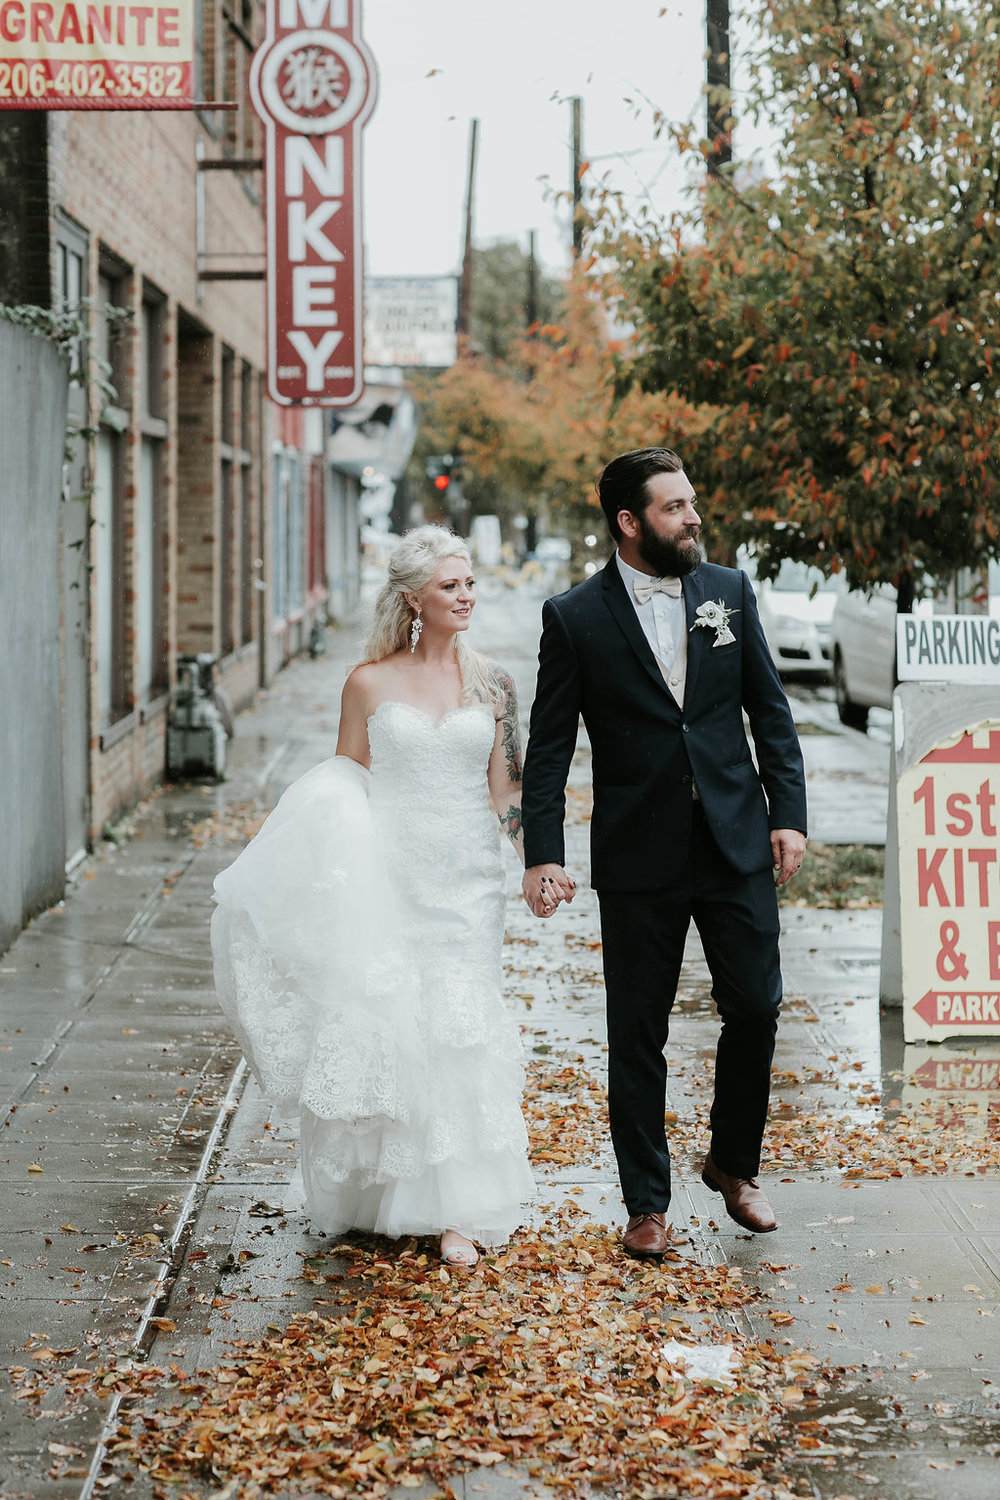 The_Big_Fake_wedding_Seattle_Within_sodo_wedding_by_Adina_Preston_Weddings_118.JPG